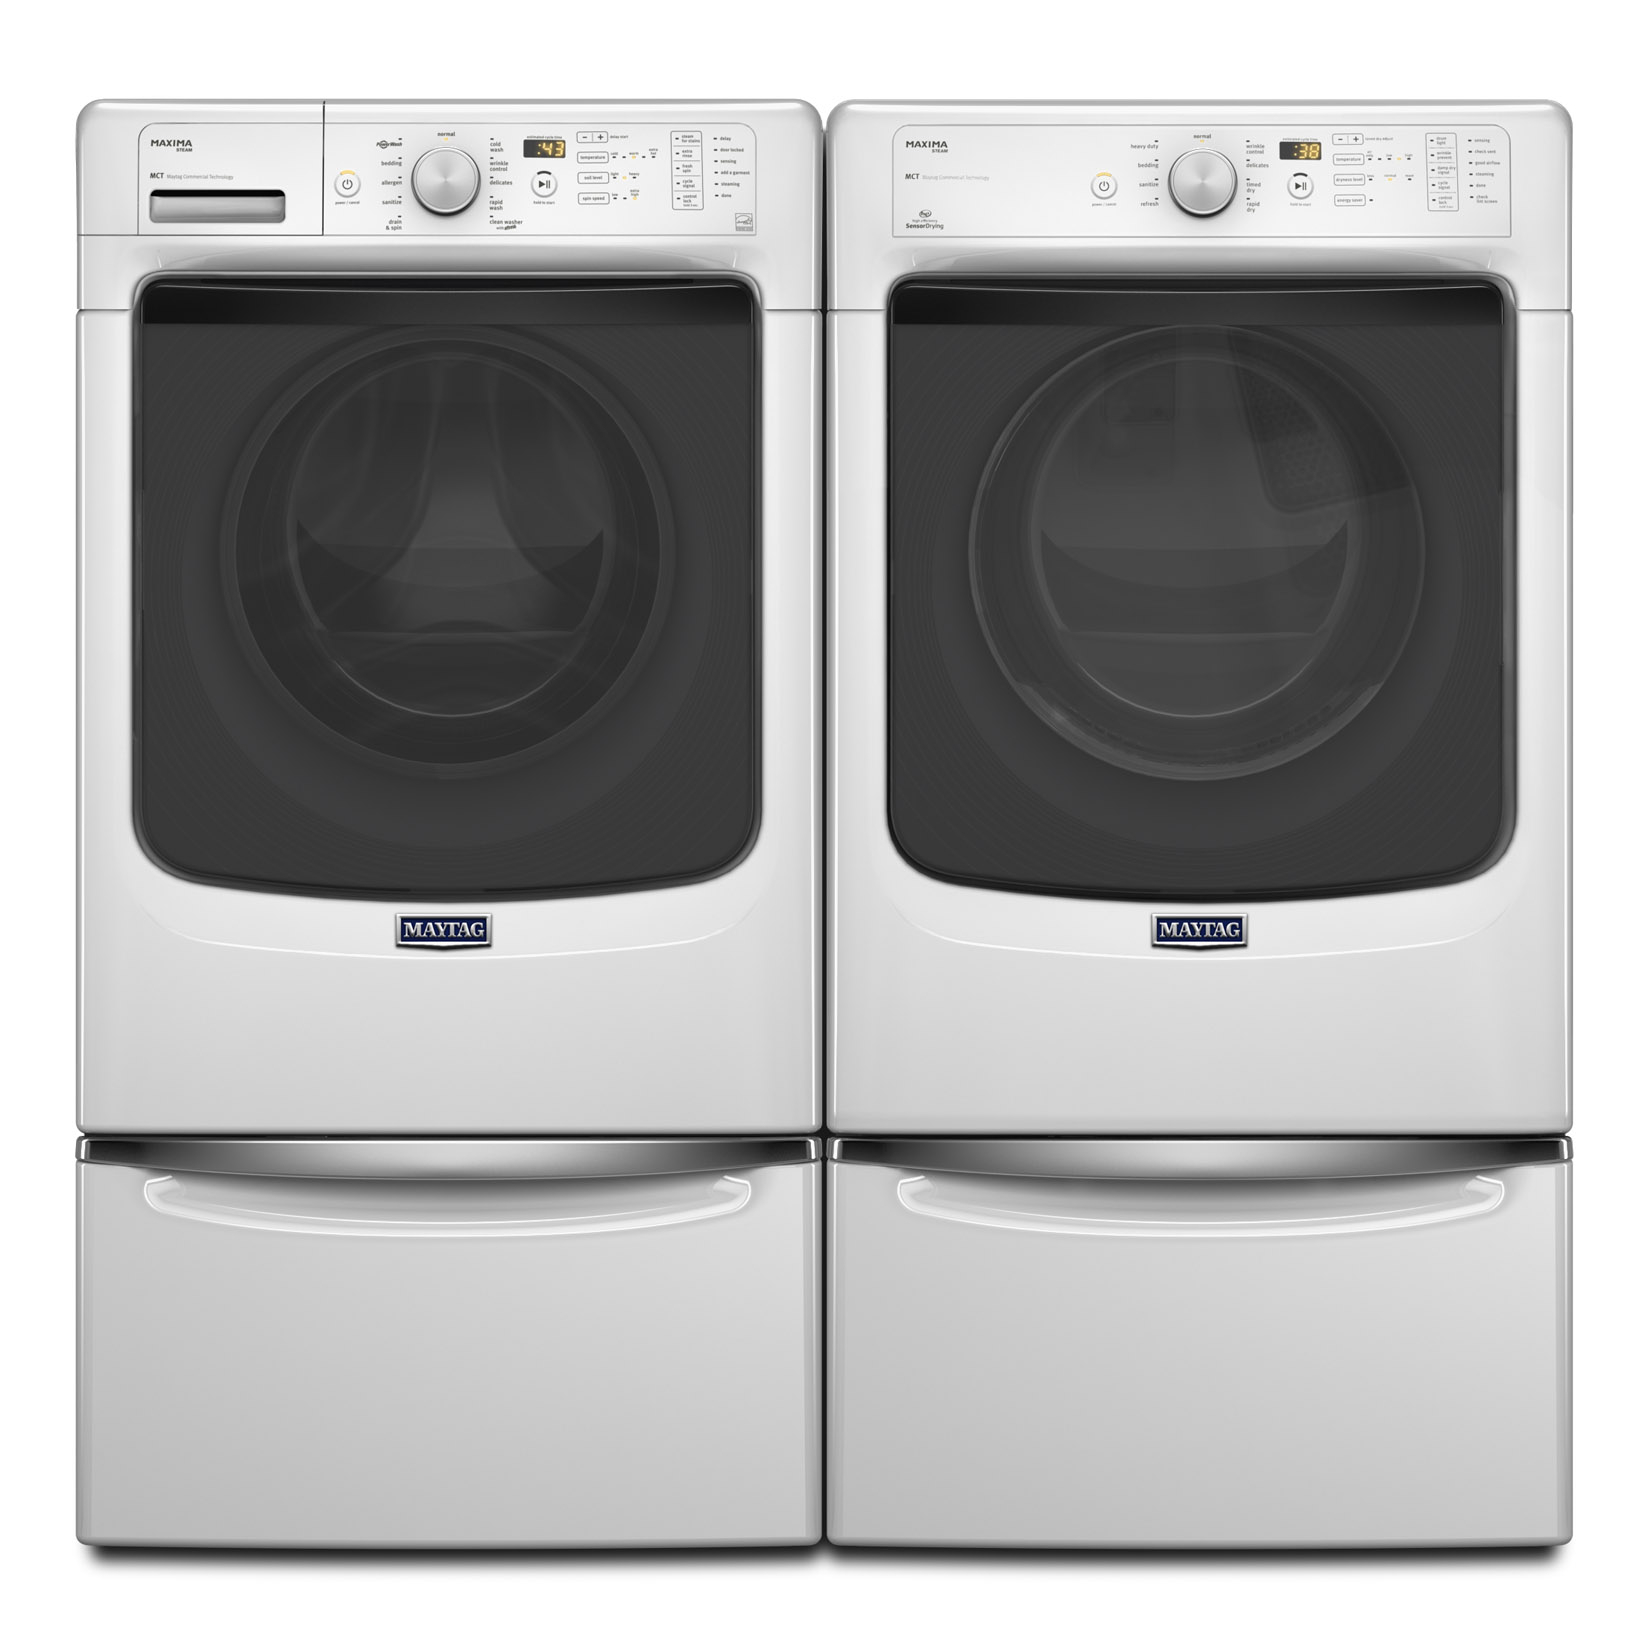 Maytag Mhw5100dw 4 5 Cu Ft Front Load Washer Sears - Maytag Maxima Washer Reviews